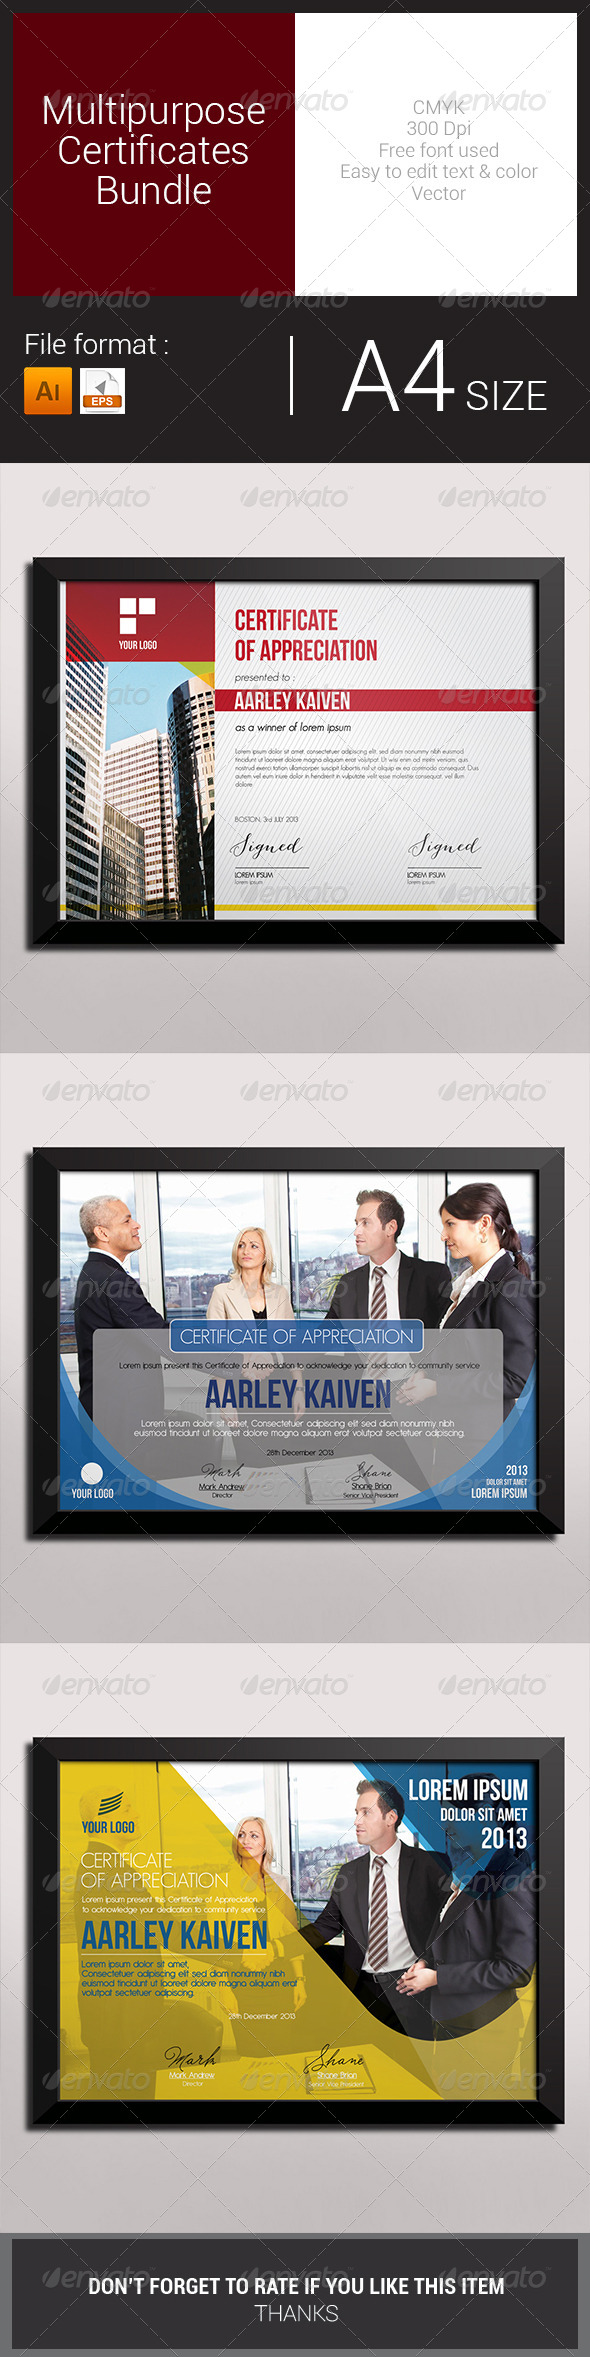 GraphicRiver Multipurpose Certificates Bundle 7886162